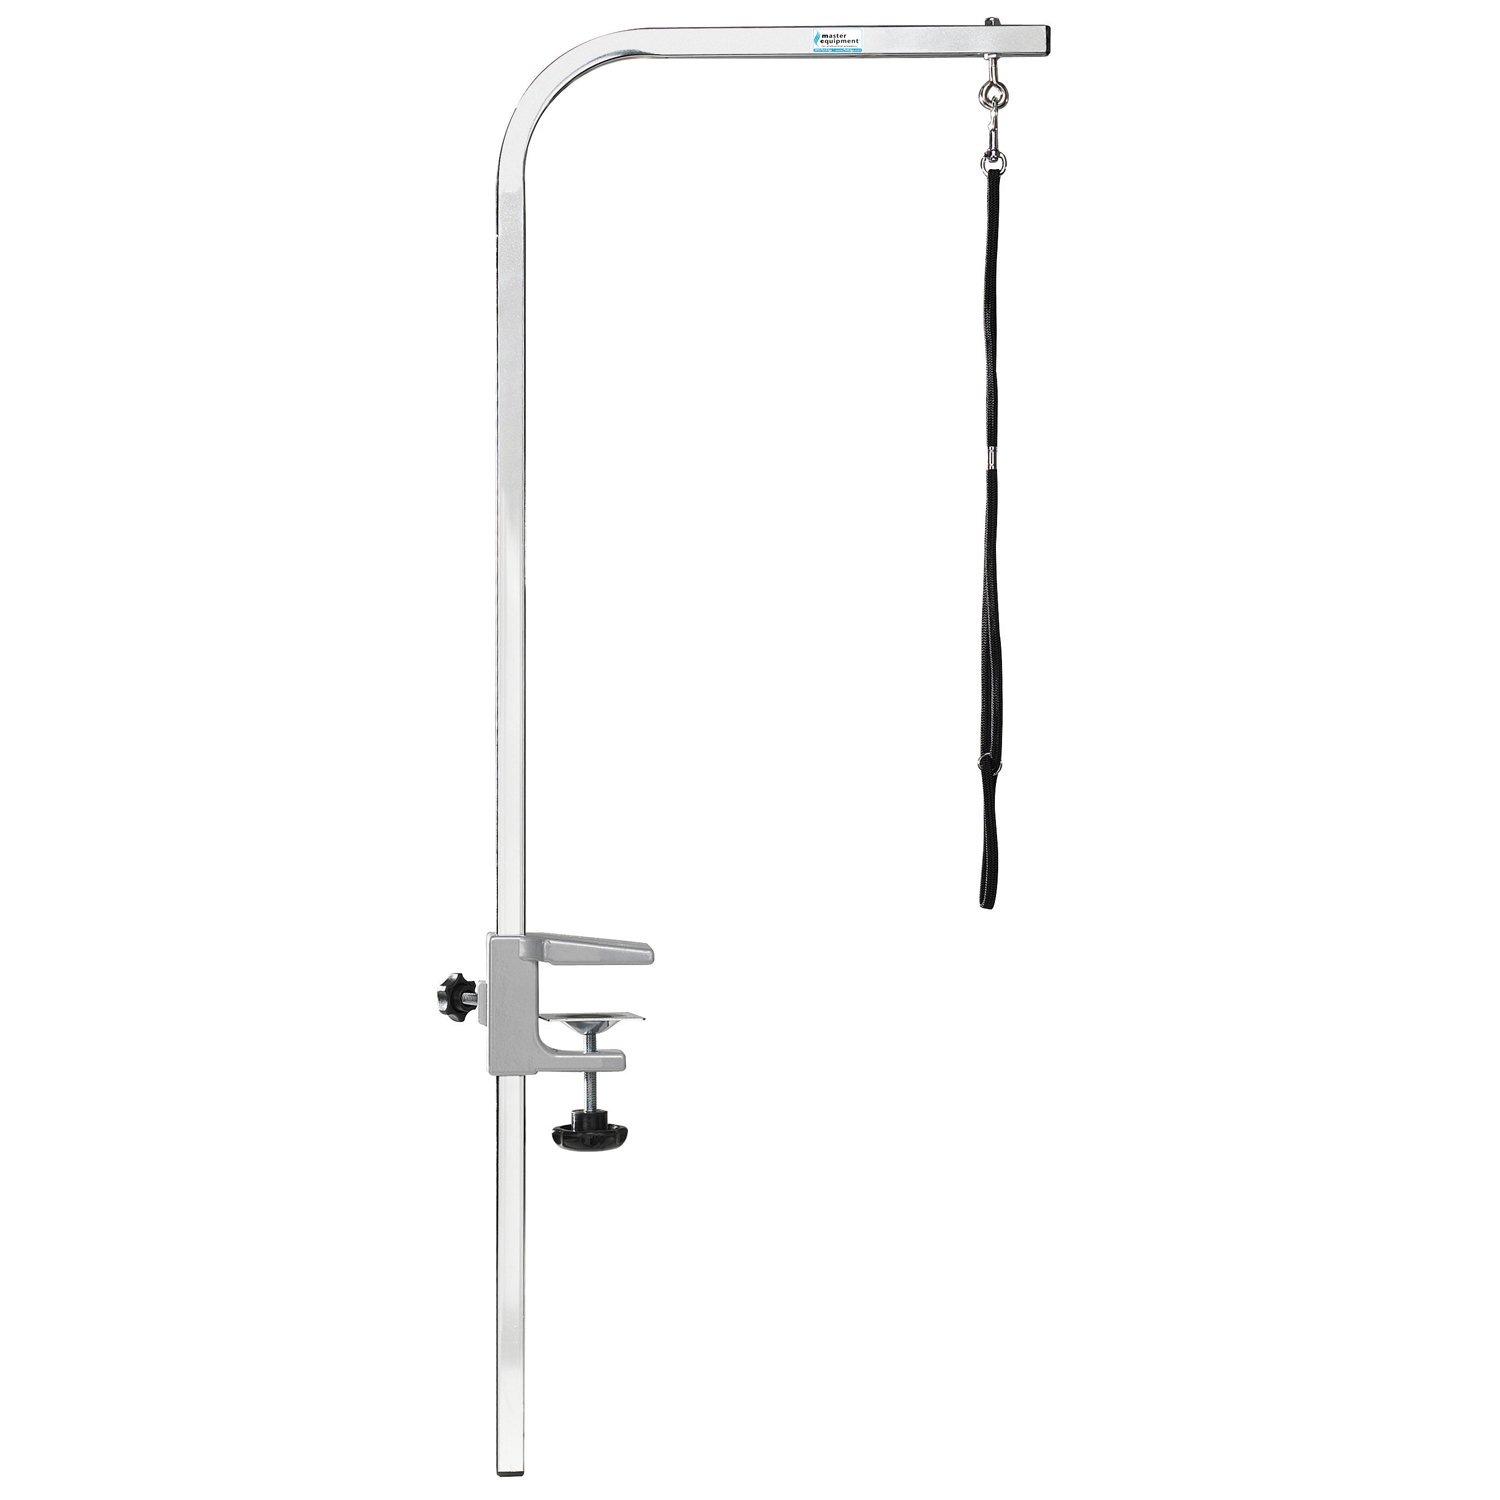 Pet Edge Master Equipment Silver Aluminum Pet Grooming Arm & Clamp - Adjustable Height to 36'', Fits Most Grooming Tables by Master Equipment